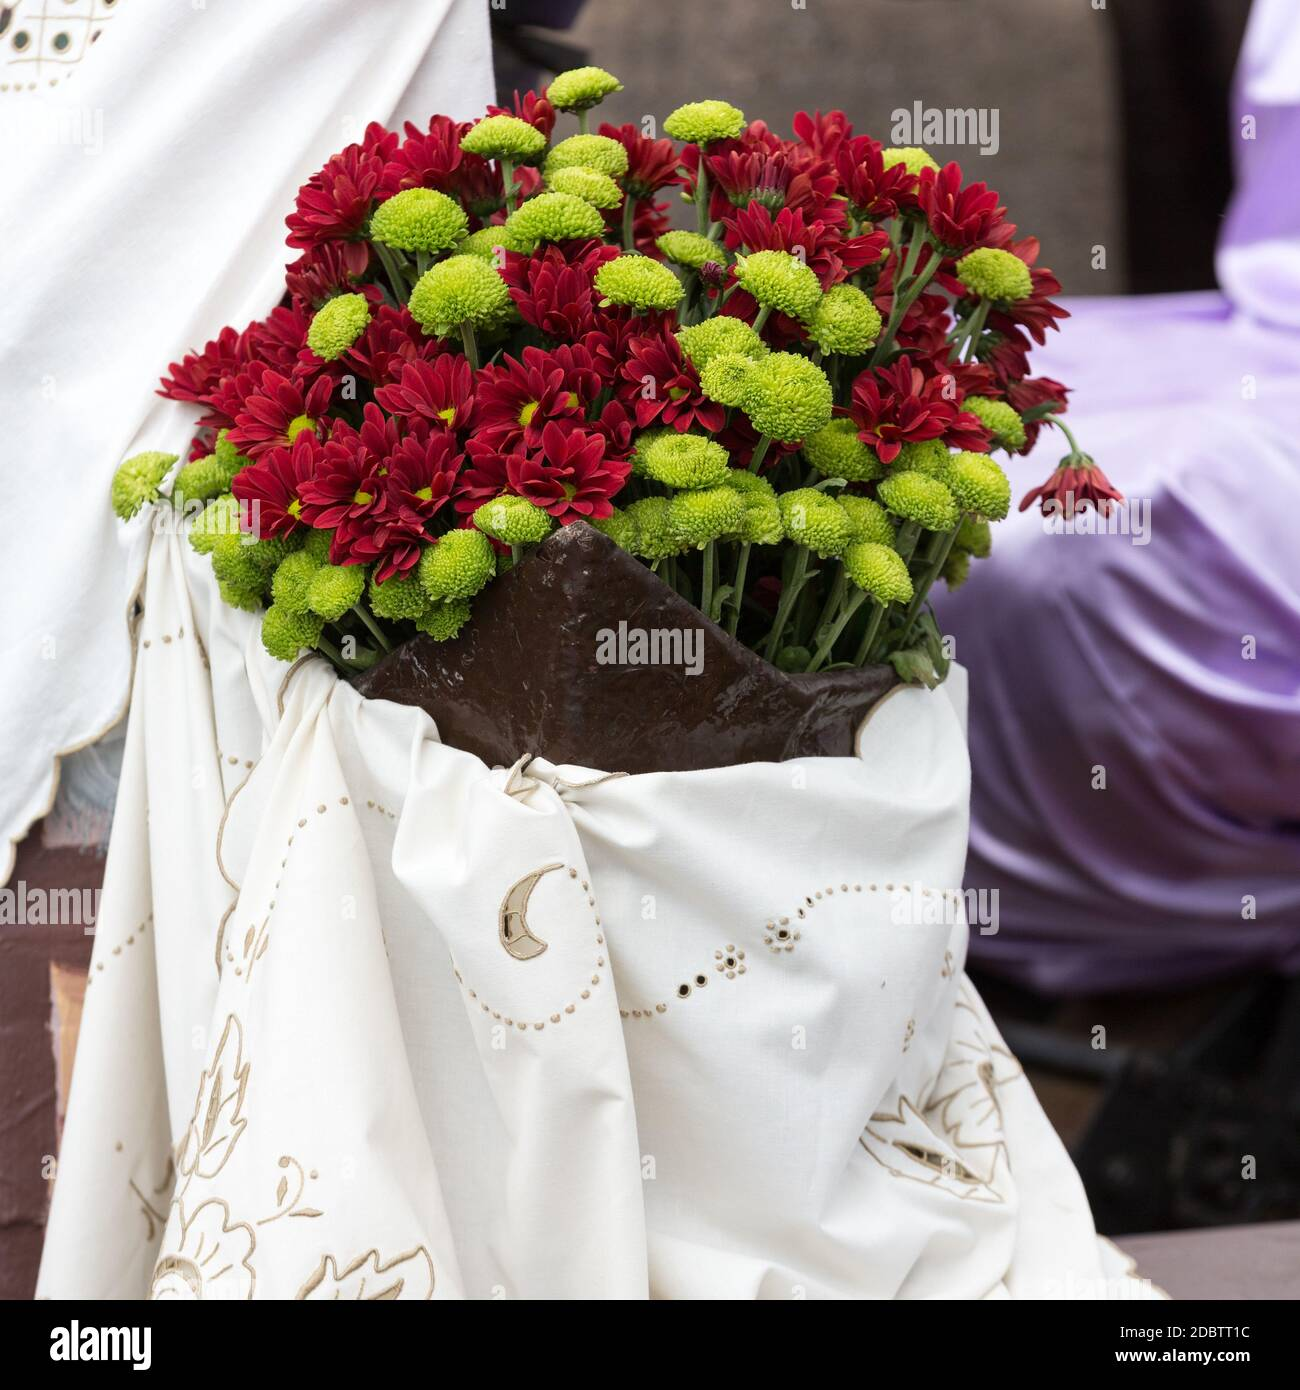 Decorations with flowers during Madeira Wine Festival - Historical and Ethnographic parade in Funchal on Madeira. Portugal Stock Photo